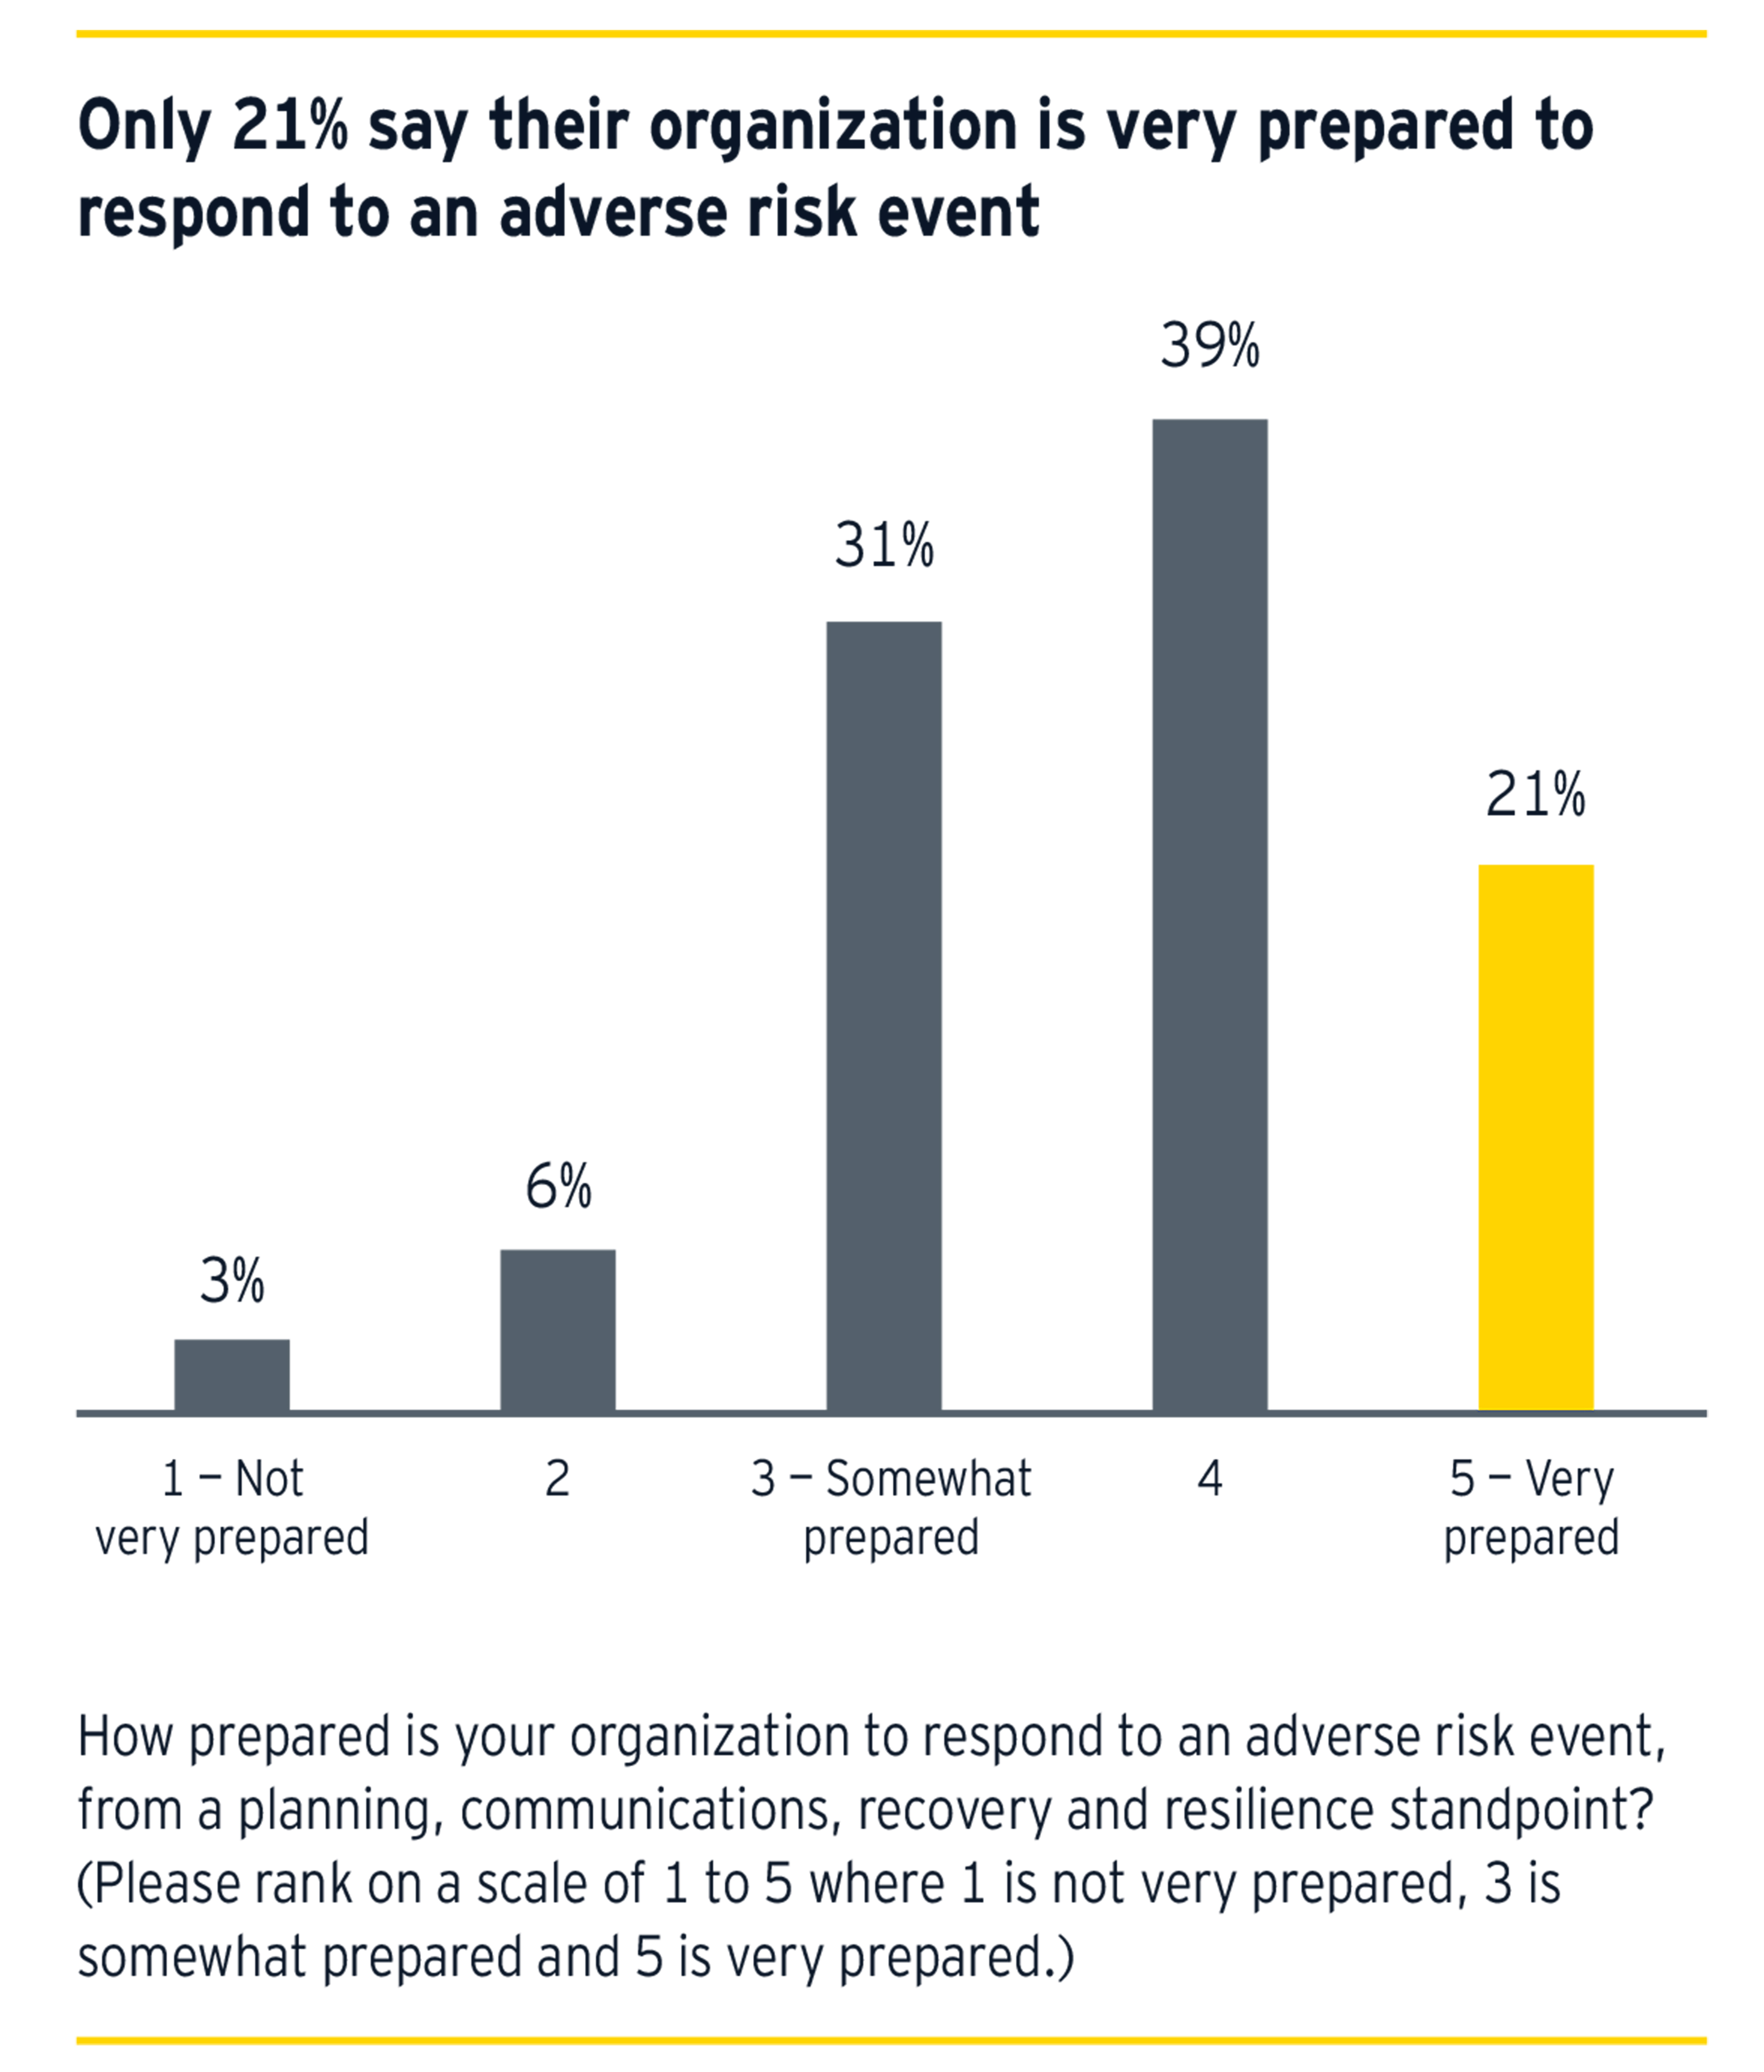 Only 21% say their organization is very prepared to respond to an adverse risk event